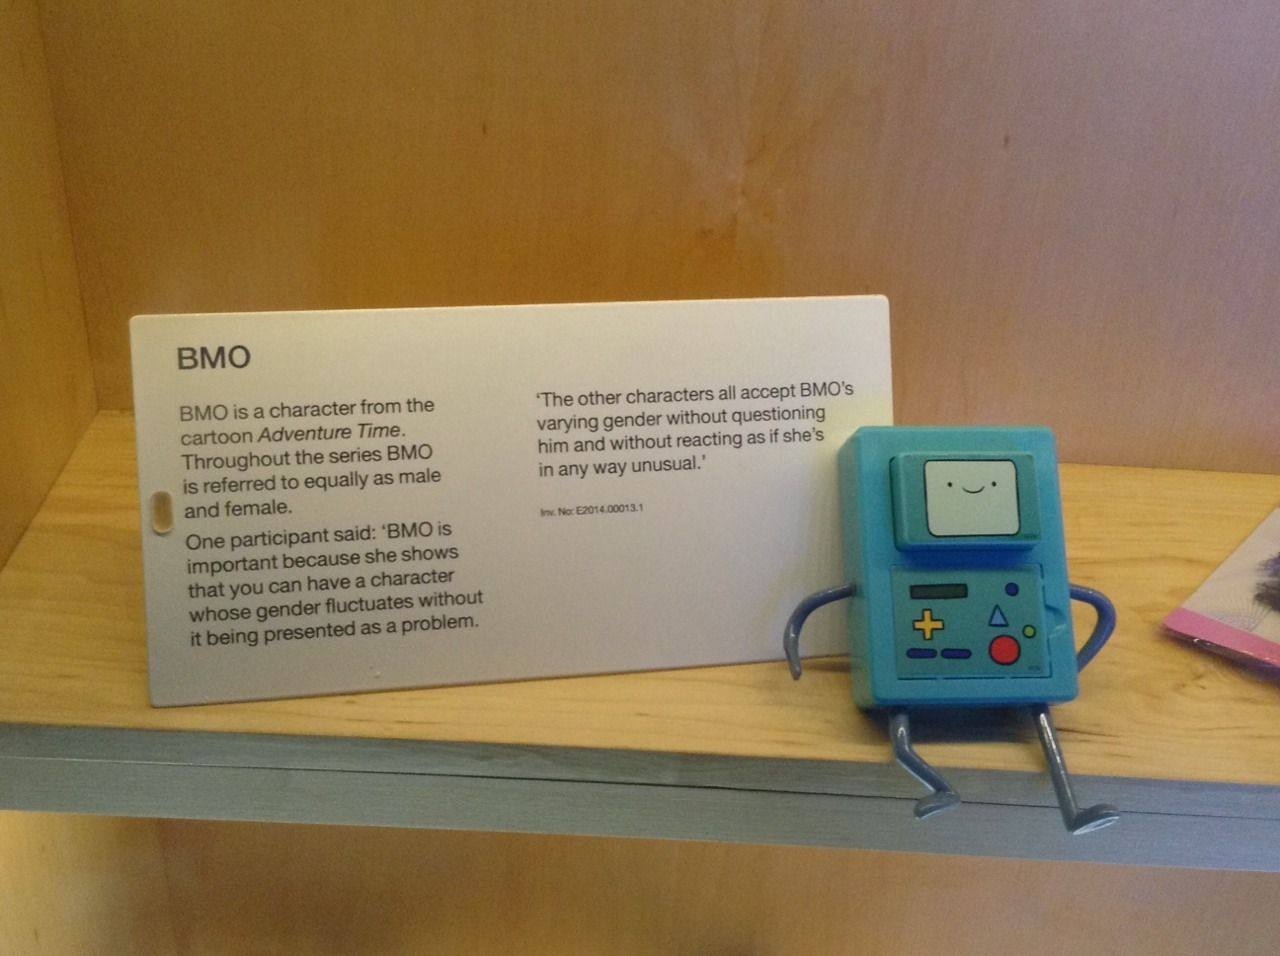 BMO on display in a London museum as a healthy gender-fluid character.